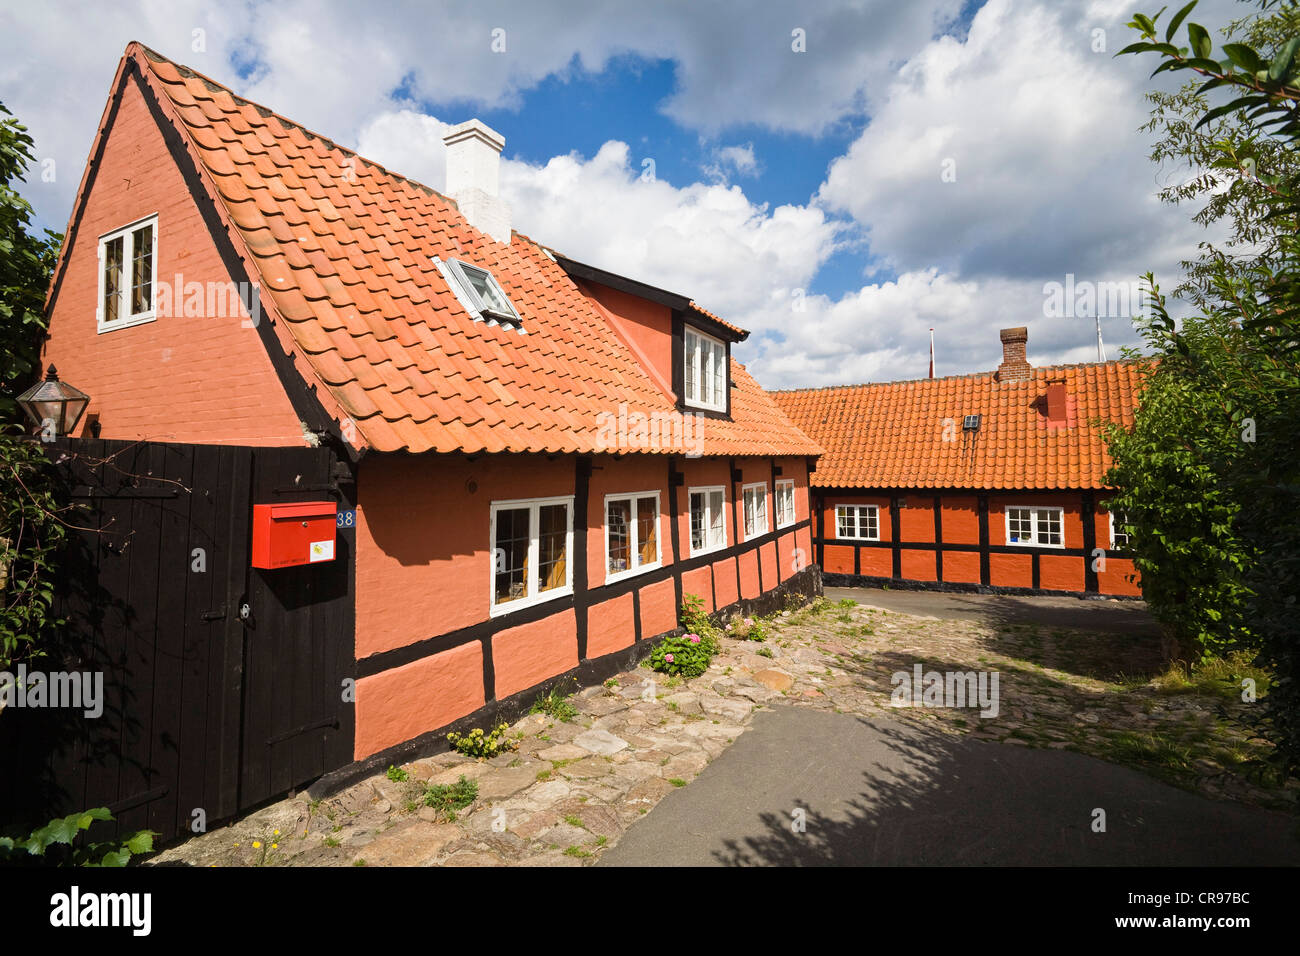 Timber-framed houses in Gudhjem village, Bornholm, Denmark, Europe - Stock Image